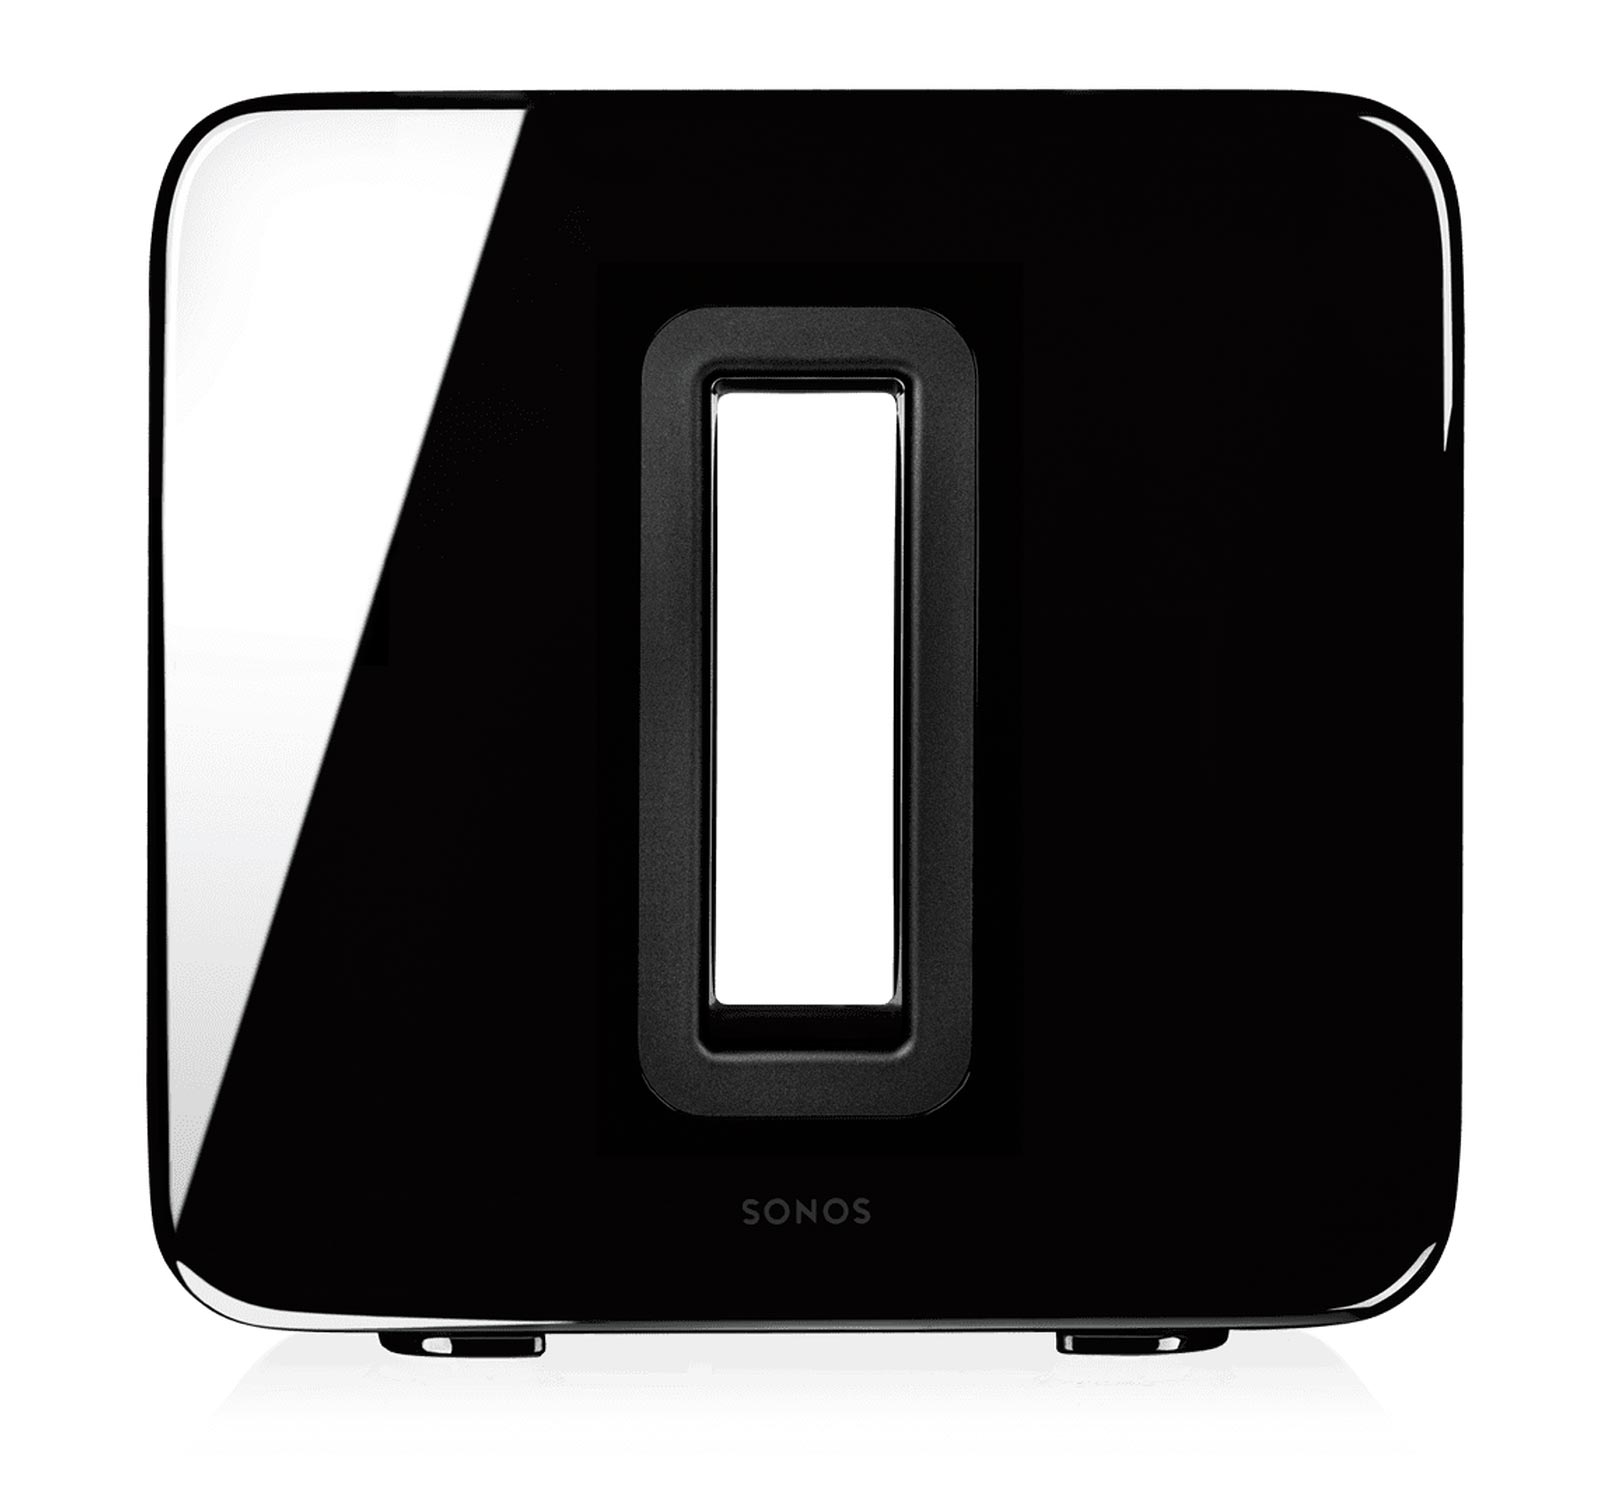 Image of the Sonos Sub (Black) Wireless Subwoofer